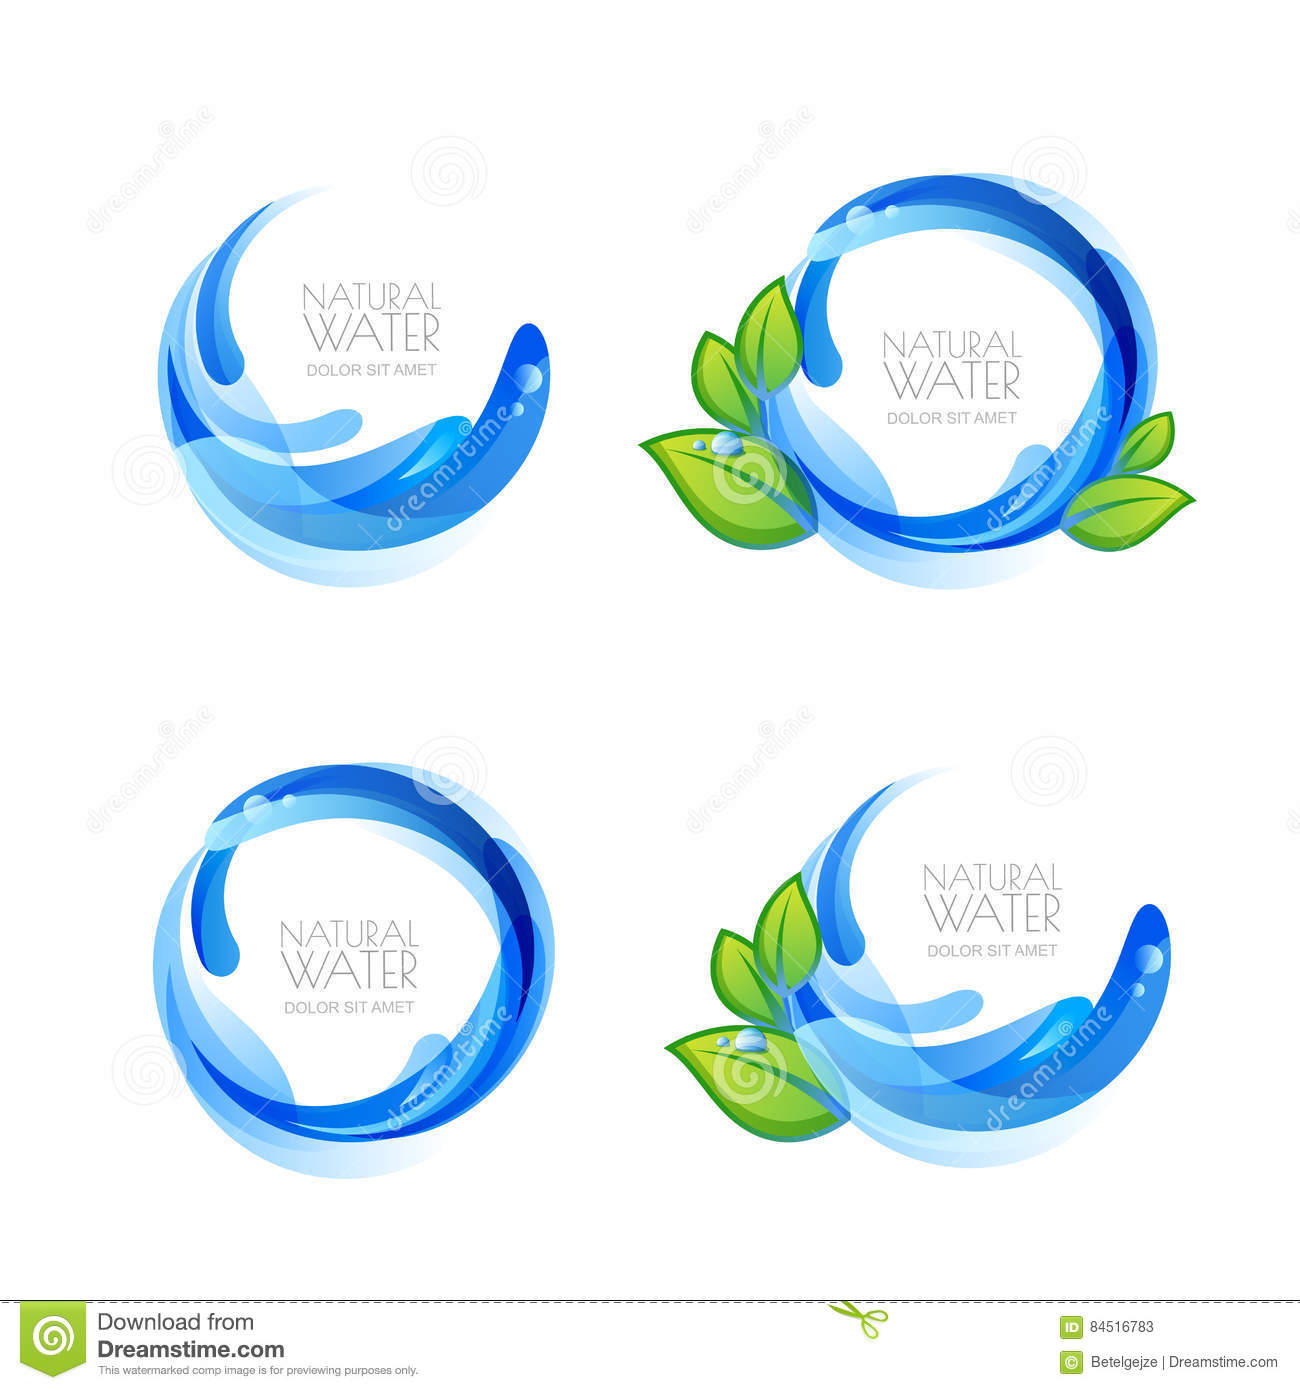 Download Set Of Logo, Icon Design Elements With Natural Clean Water Drops And Green Leaves. Stock Vector - Illustration of clear, business: 84516783